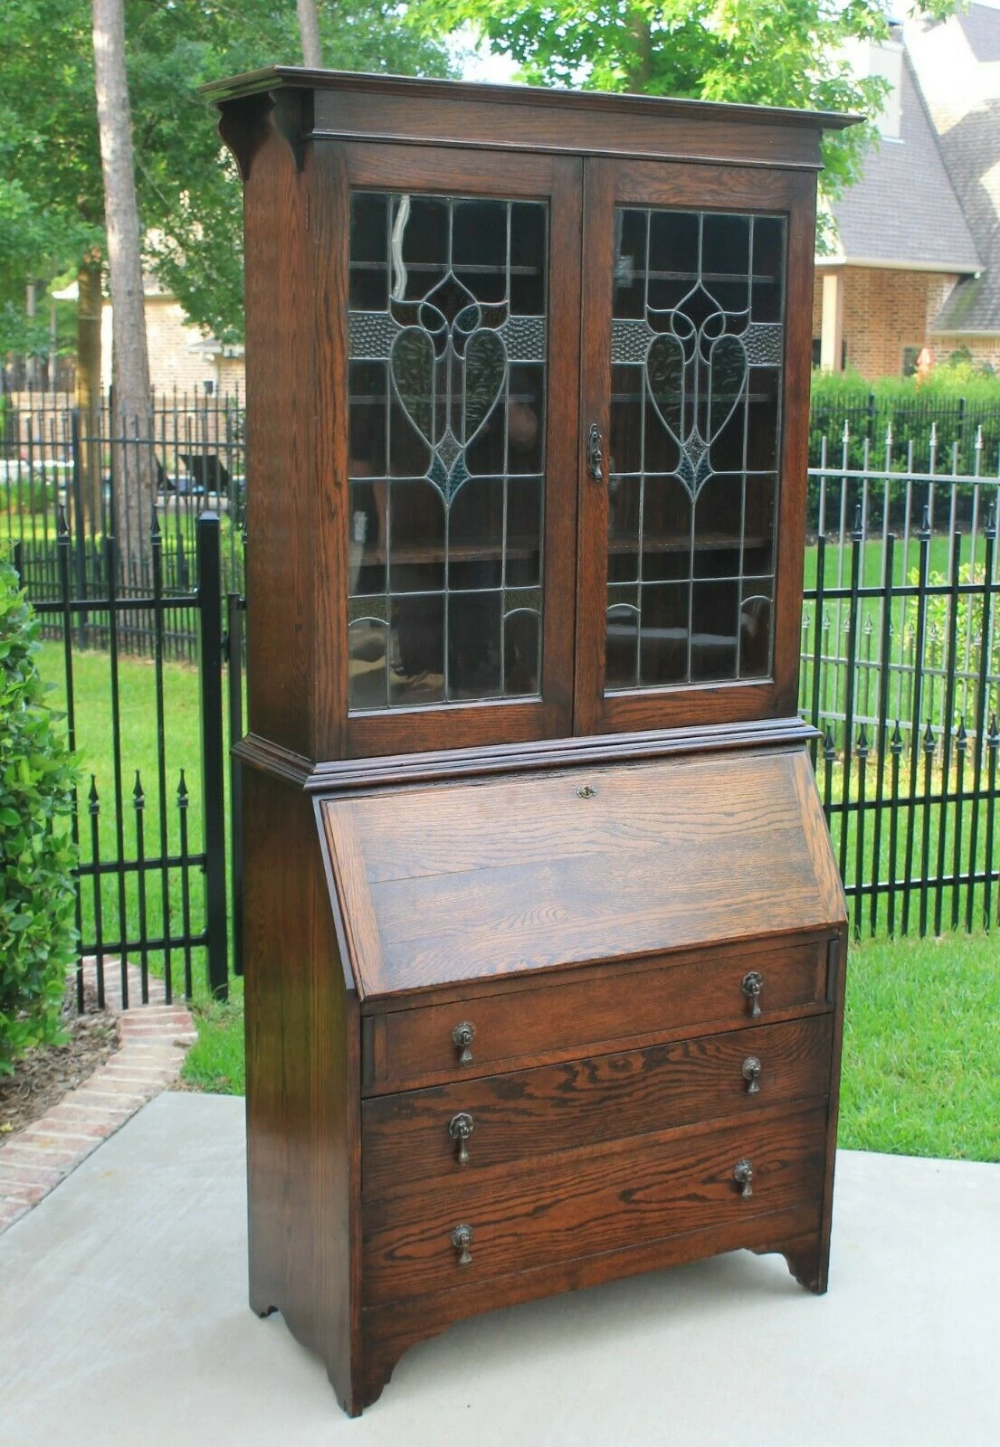 Antique English Oak Secretary Desk Bookcase Art Nouveau Bureau Stained Europeancrossroadsantique Antique Secretary Desks Leaded Glass Door Stained Glass Door